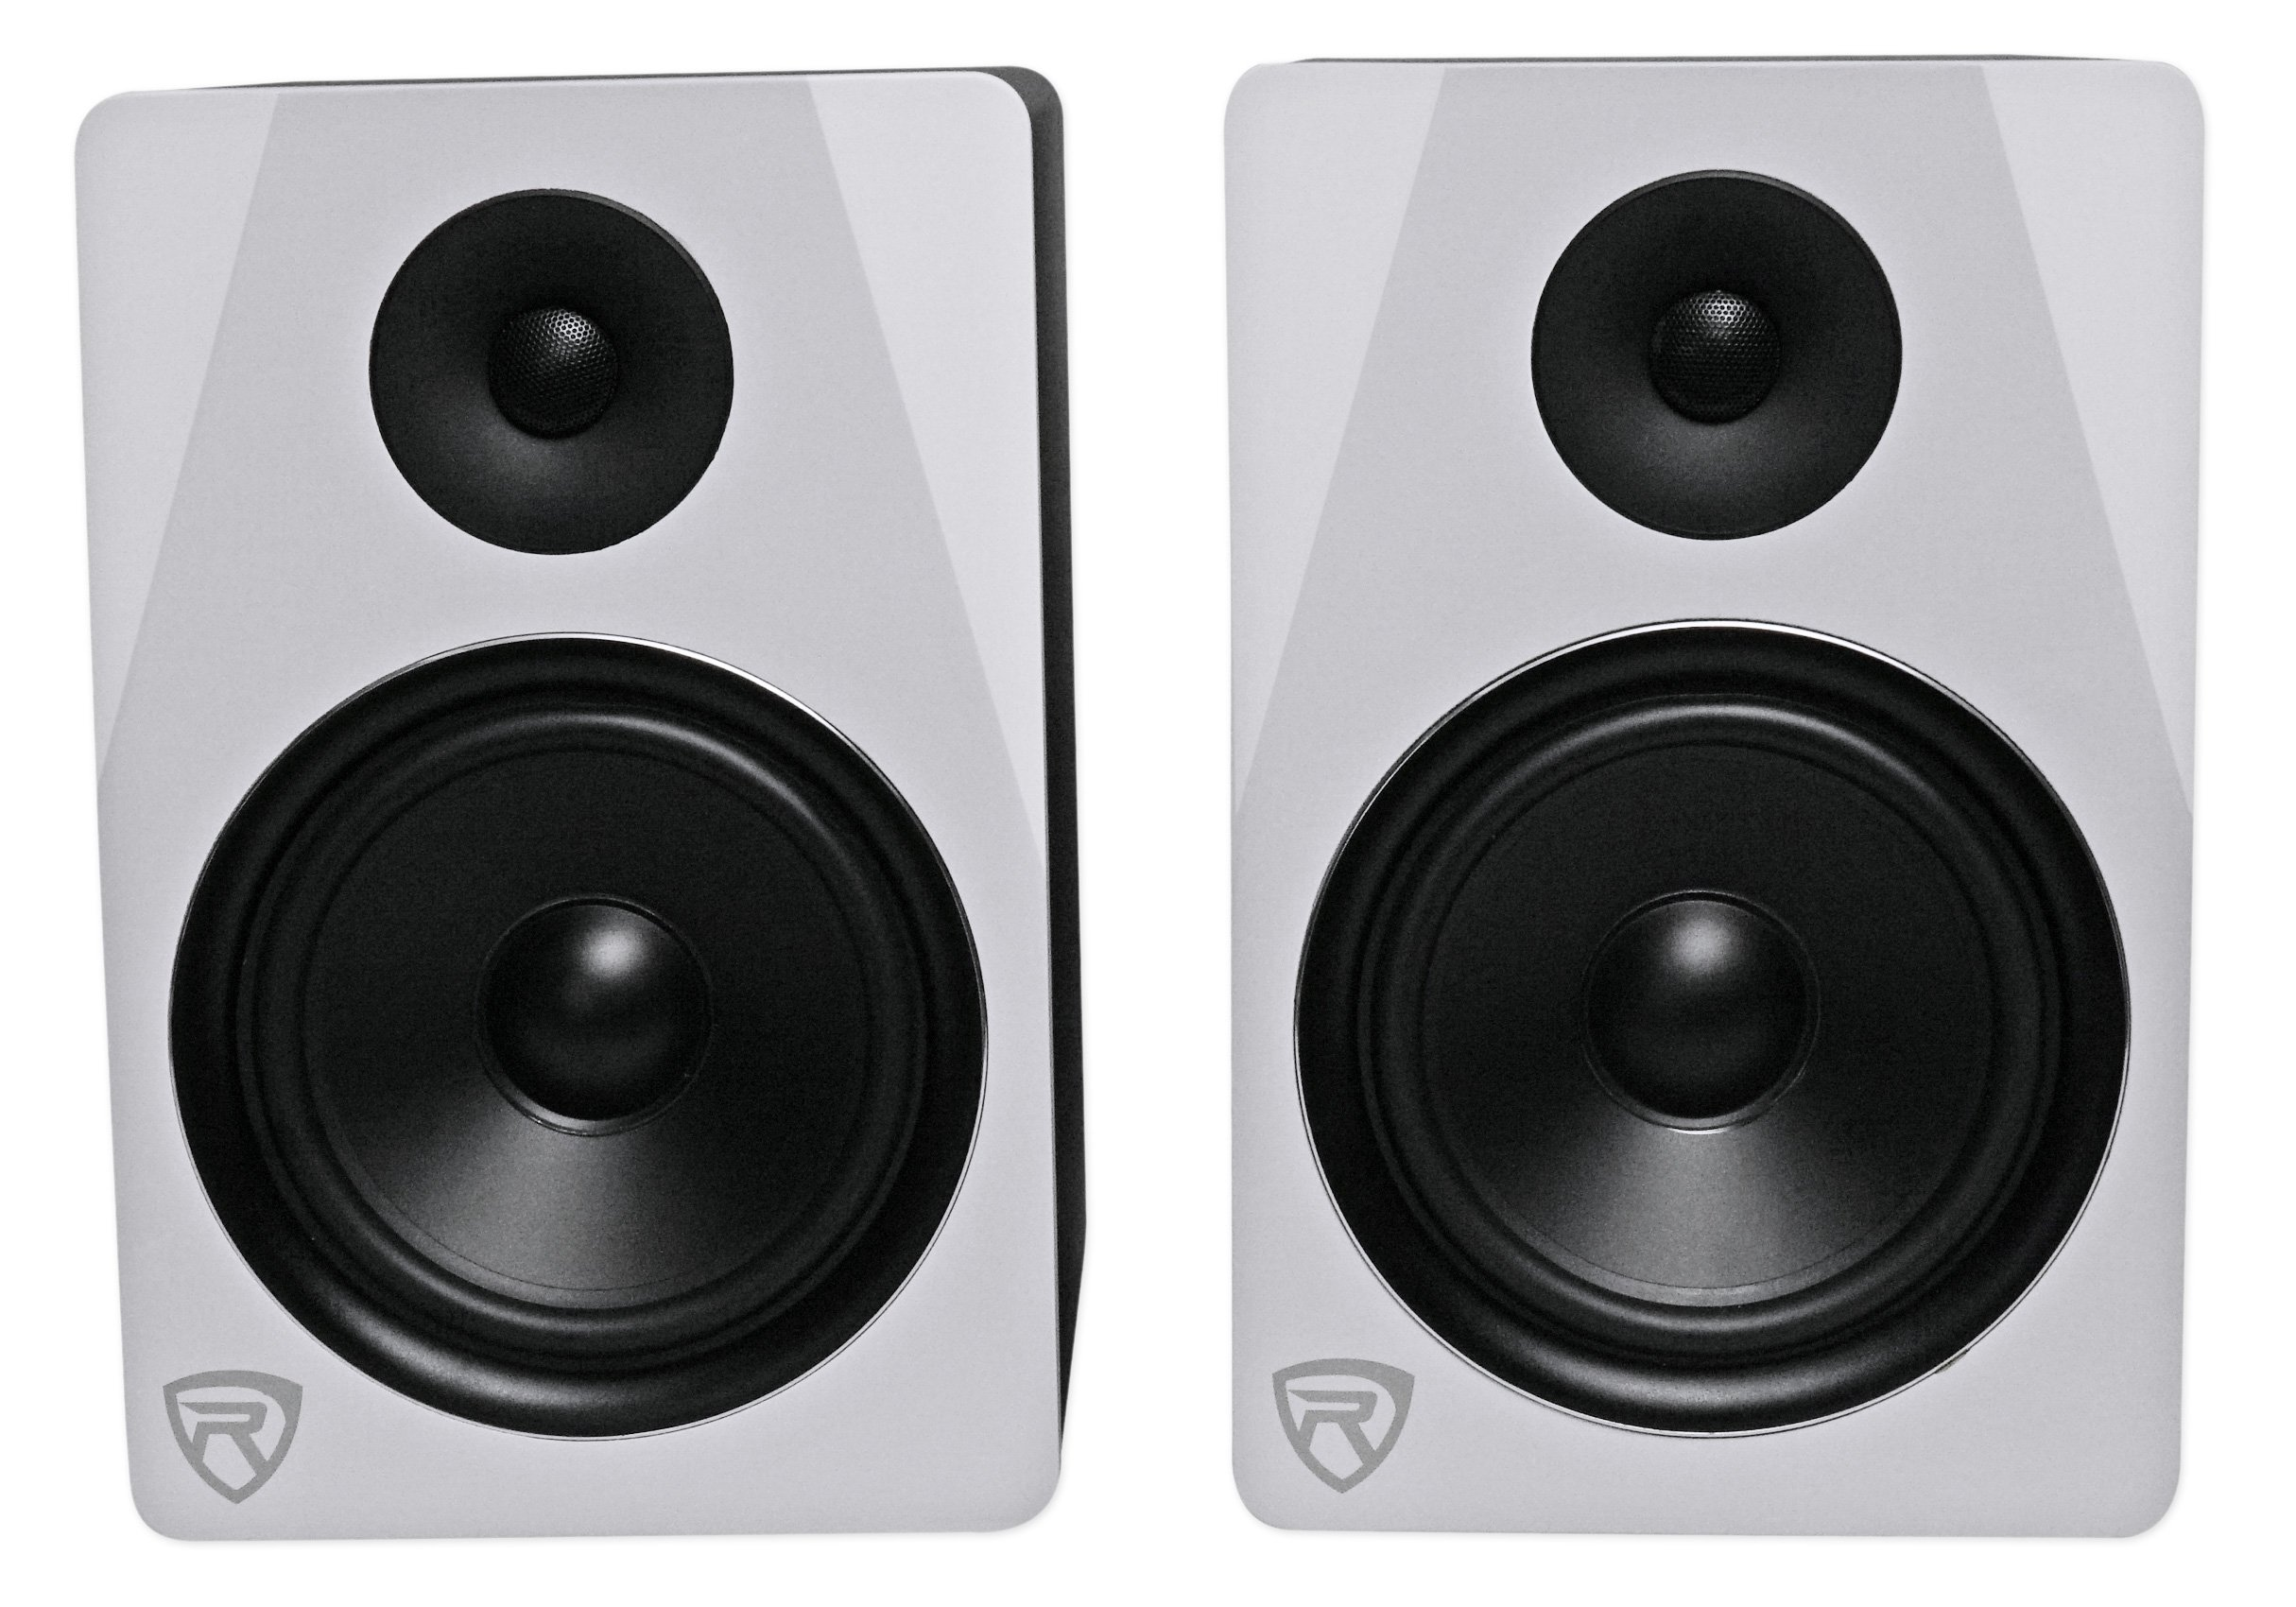 Rockville APM8W 8'' 2-Way 500W Active/Powered USB Studio Monitor Speakers Pair, White